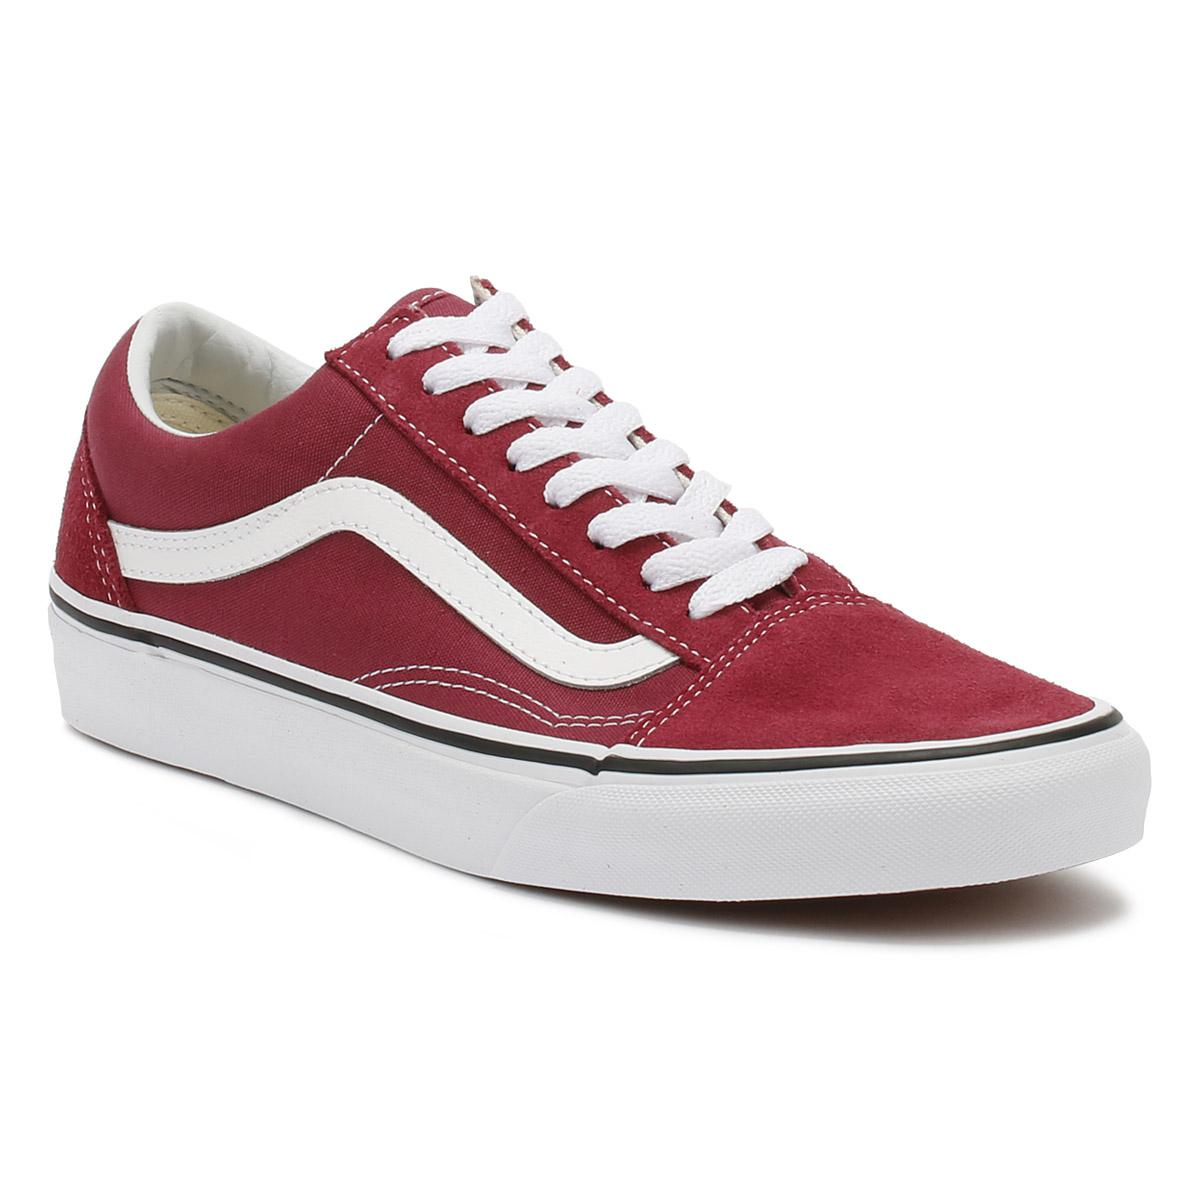 e25f7ef3e2e1 Vans. Dry Rose Red   True White Old Skool Trainers Women s Shoes ...